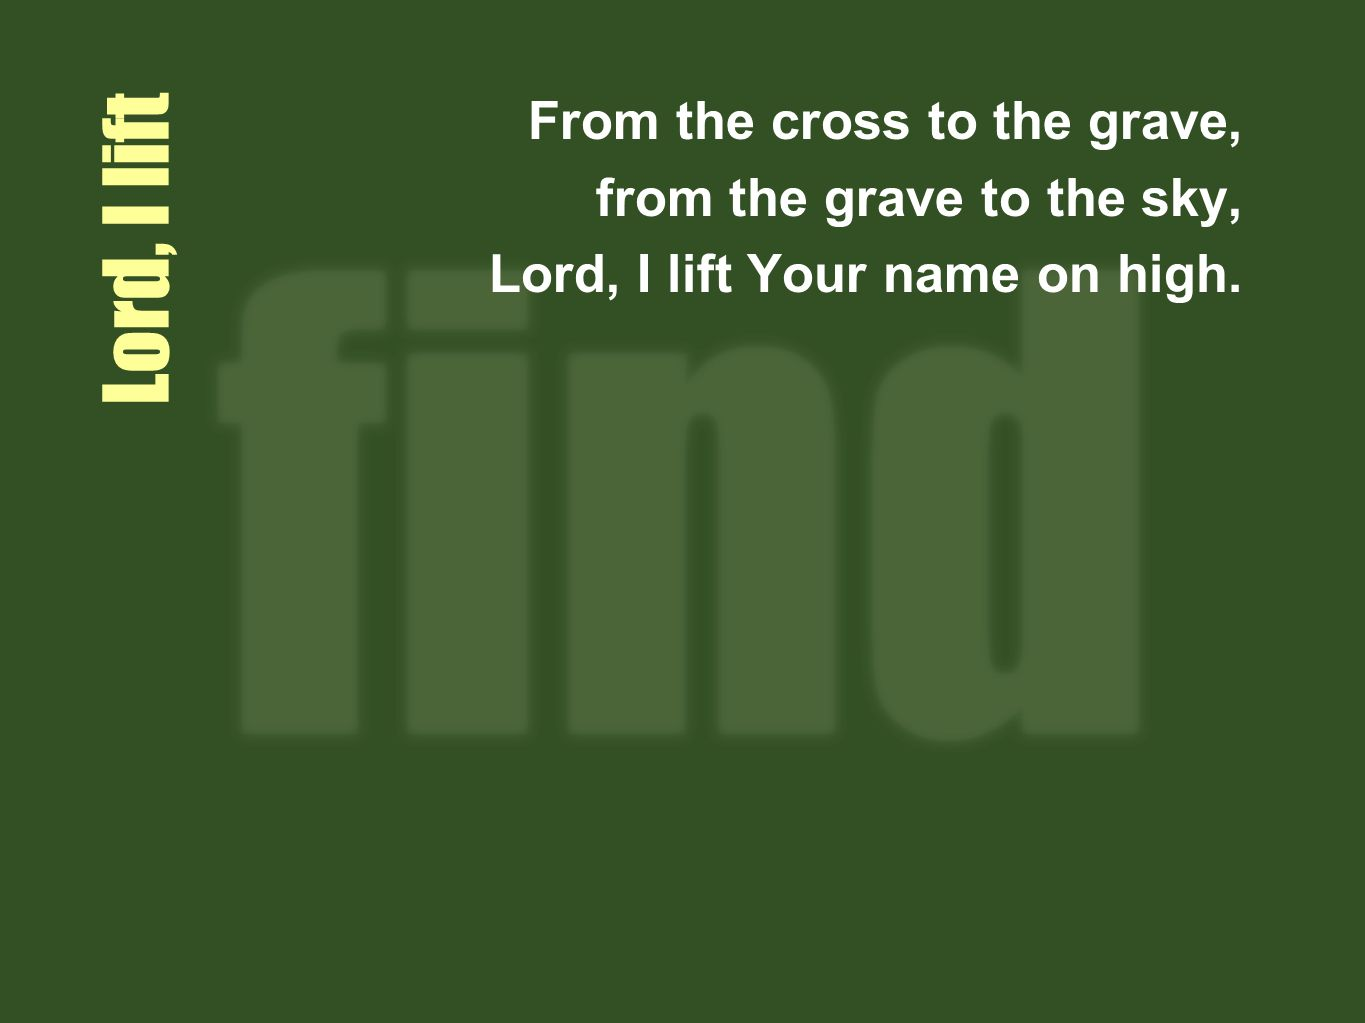 Lord, I lift From the cross to the grave, from the grave to the sky, Lord, I lift Your name on high.